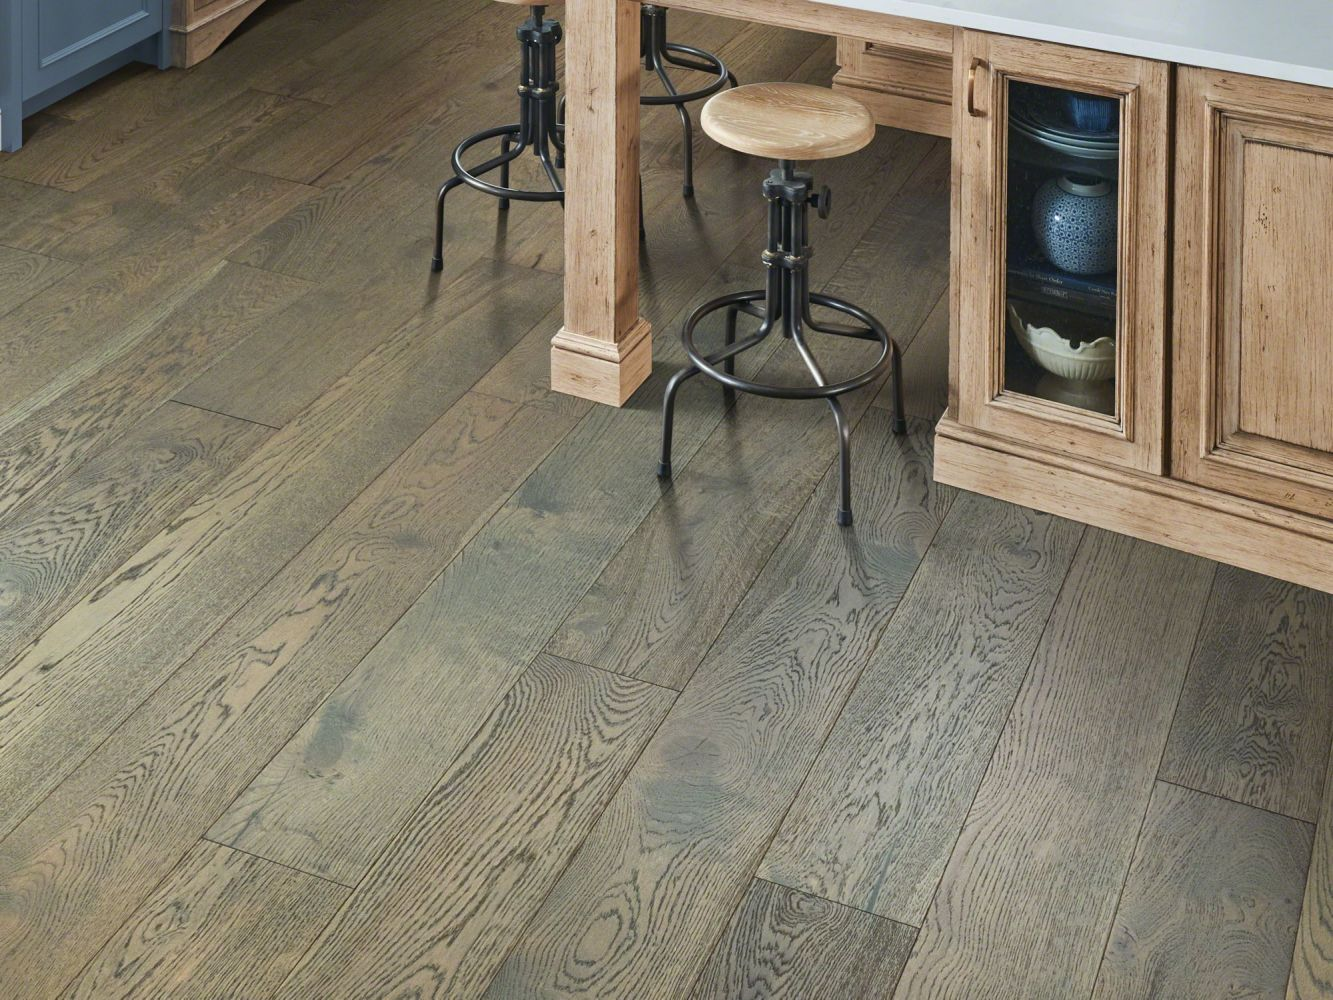 Shaw Floors Home Fn Gold Hardwood Elegance Oak Praline 07038_HW689